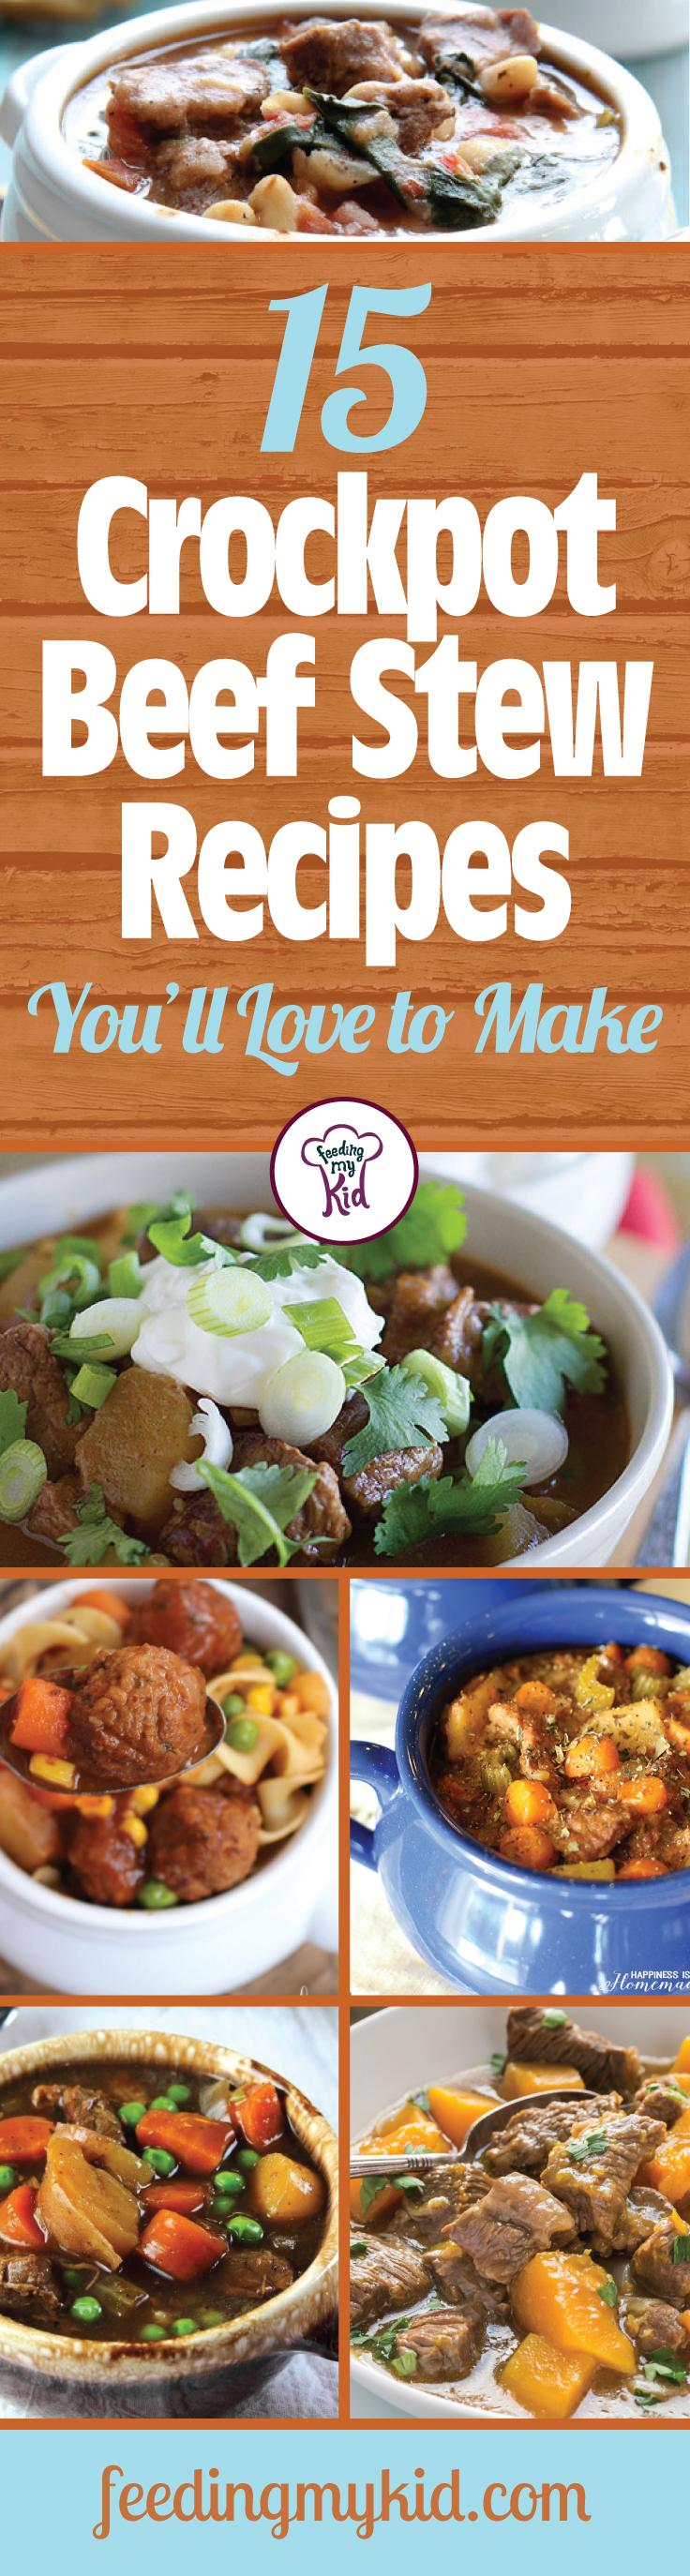 15 Crockpot Beef Stew Recipes You'll Love to Make - Here at Feeding My Kid, we're looking out for you. We've handpicked these great beef stew crockpot recipes for their simplicity and taste. These meals take little time to prepare, just let the crockpot do the rest. From ranch beef stew to beef vegetable barley stew, these recipes are perfect for everyone! This is a must share! #fmk #recipes #beefstew